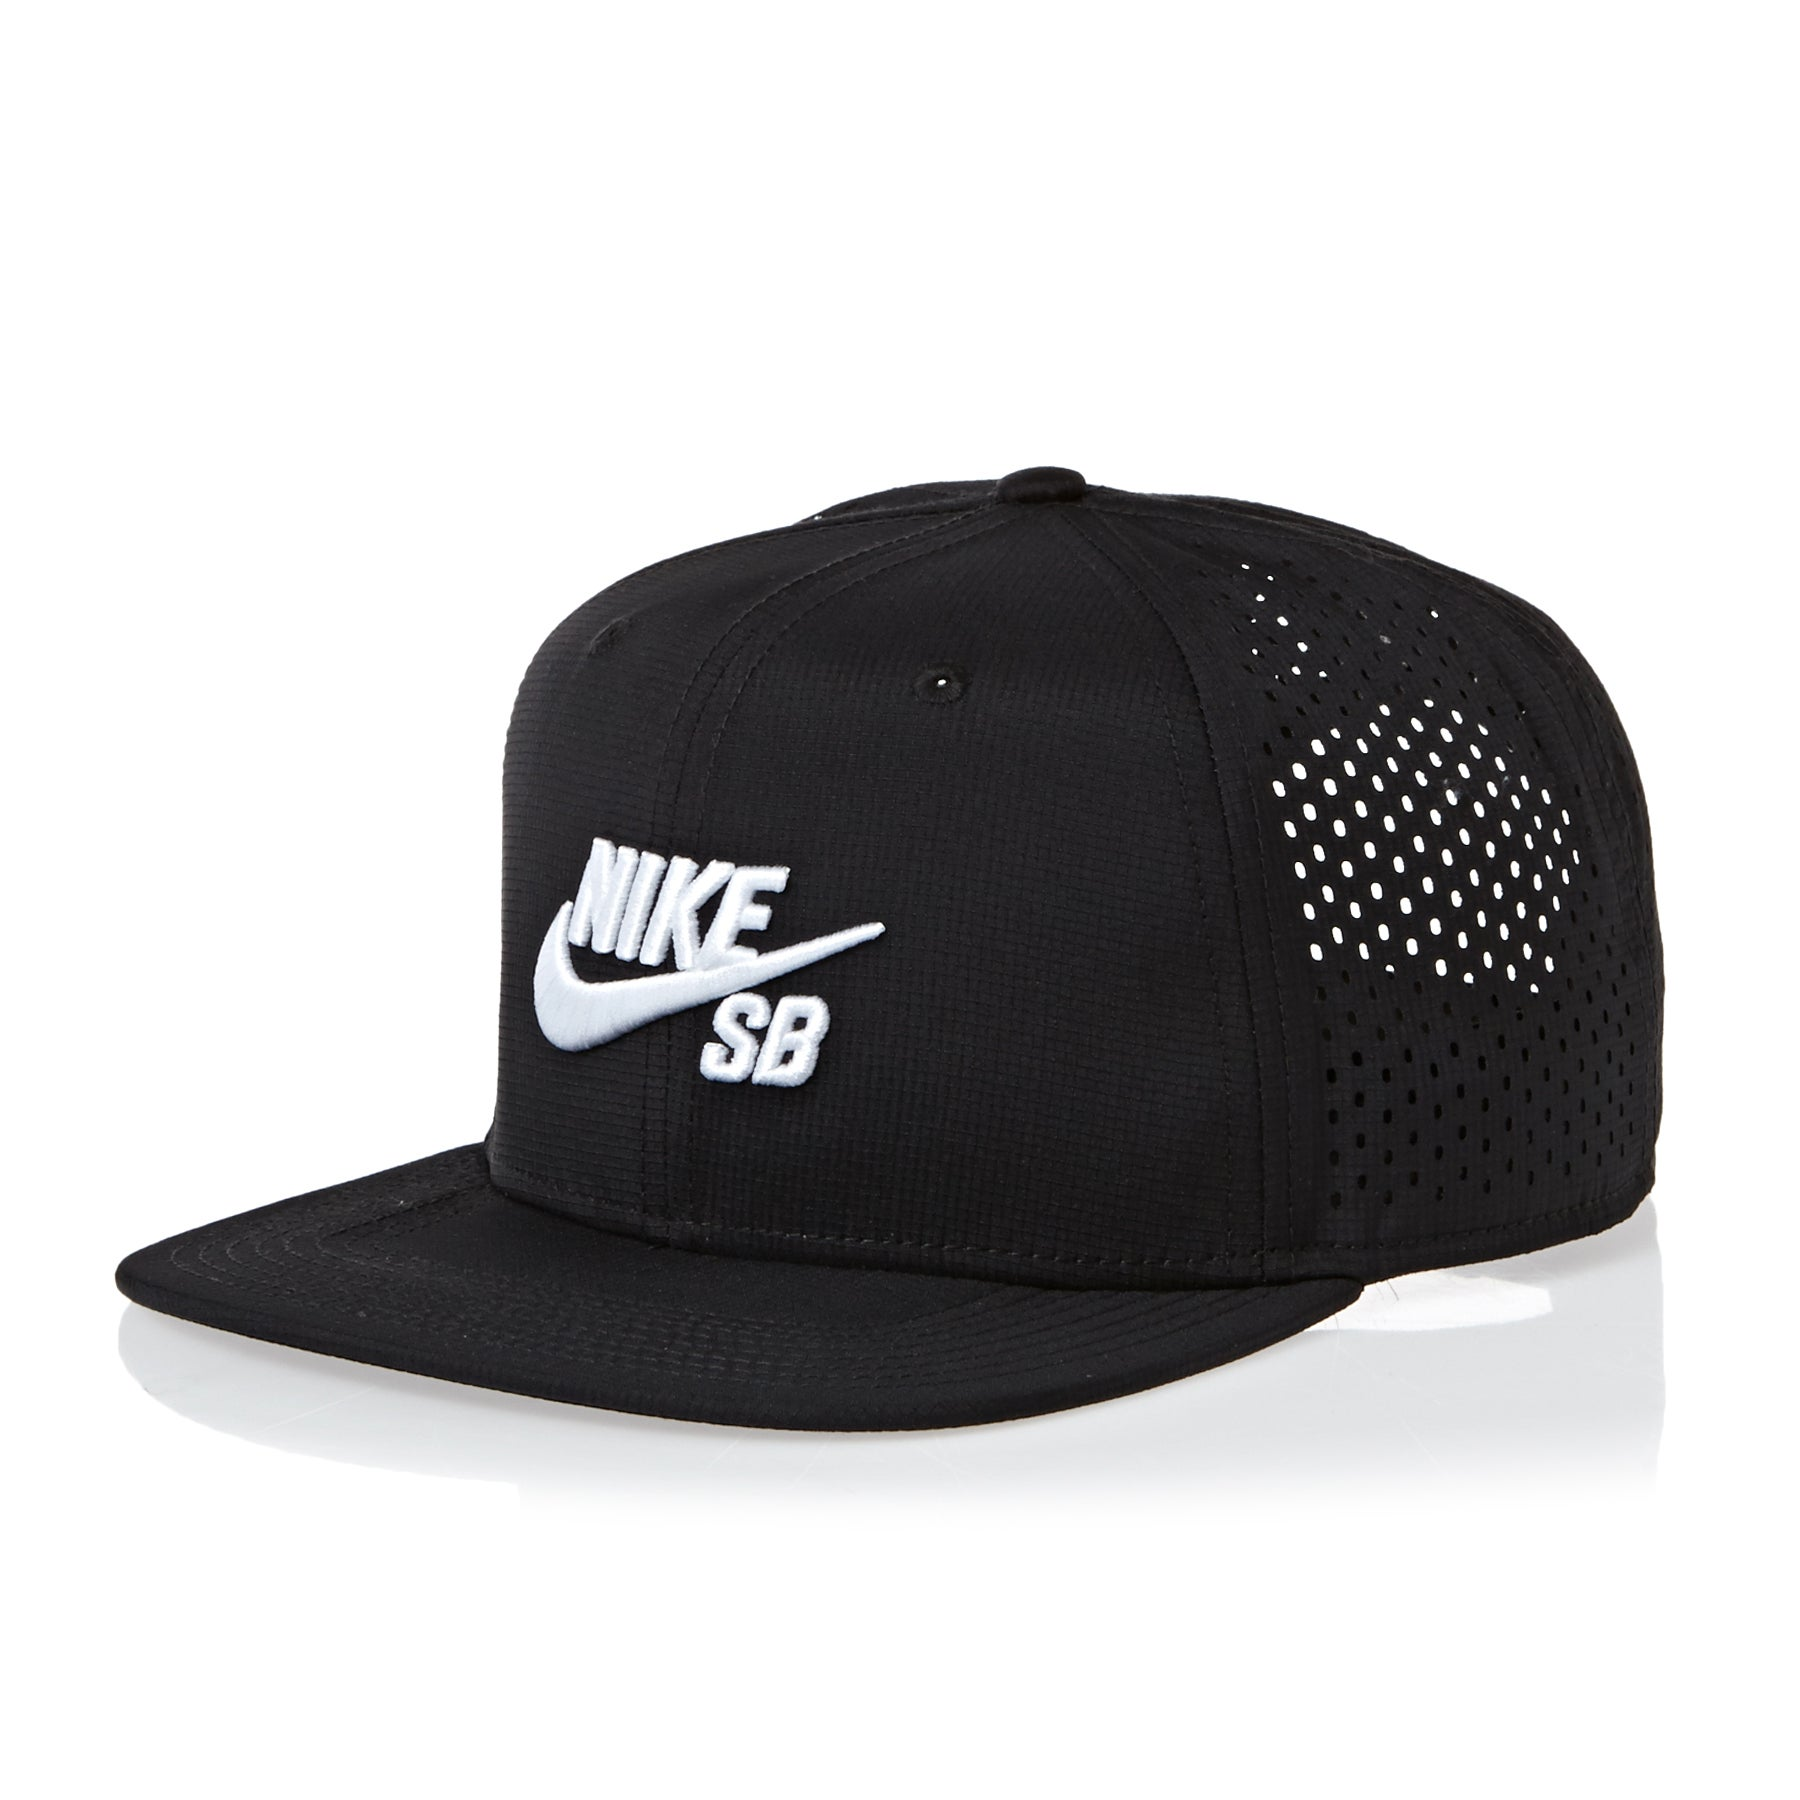 Gorro Nike SB Performance Trucker - Black / White